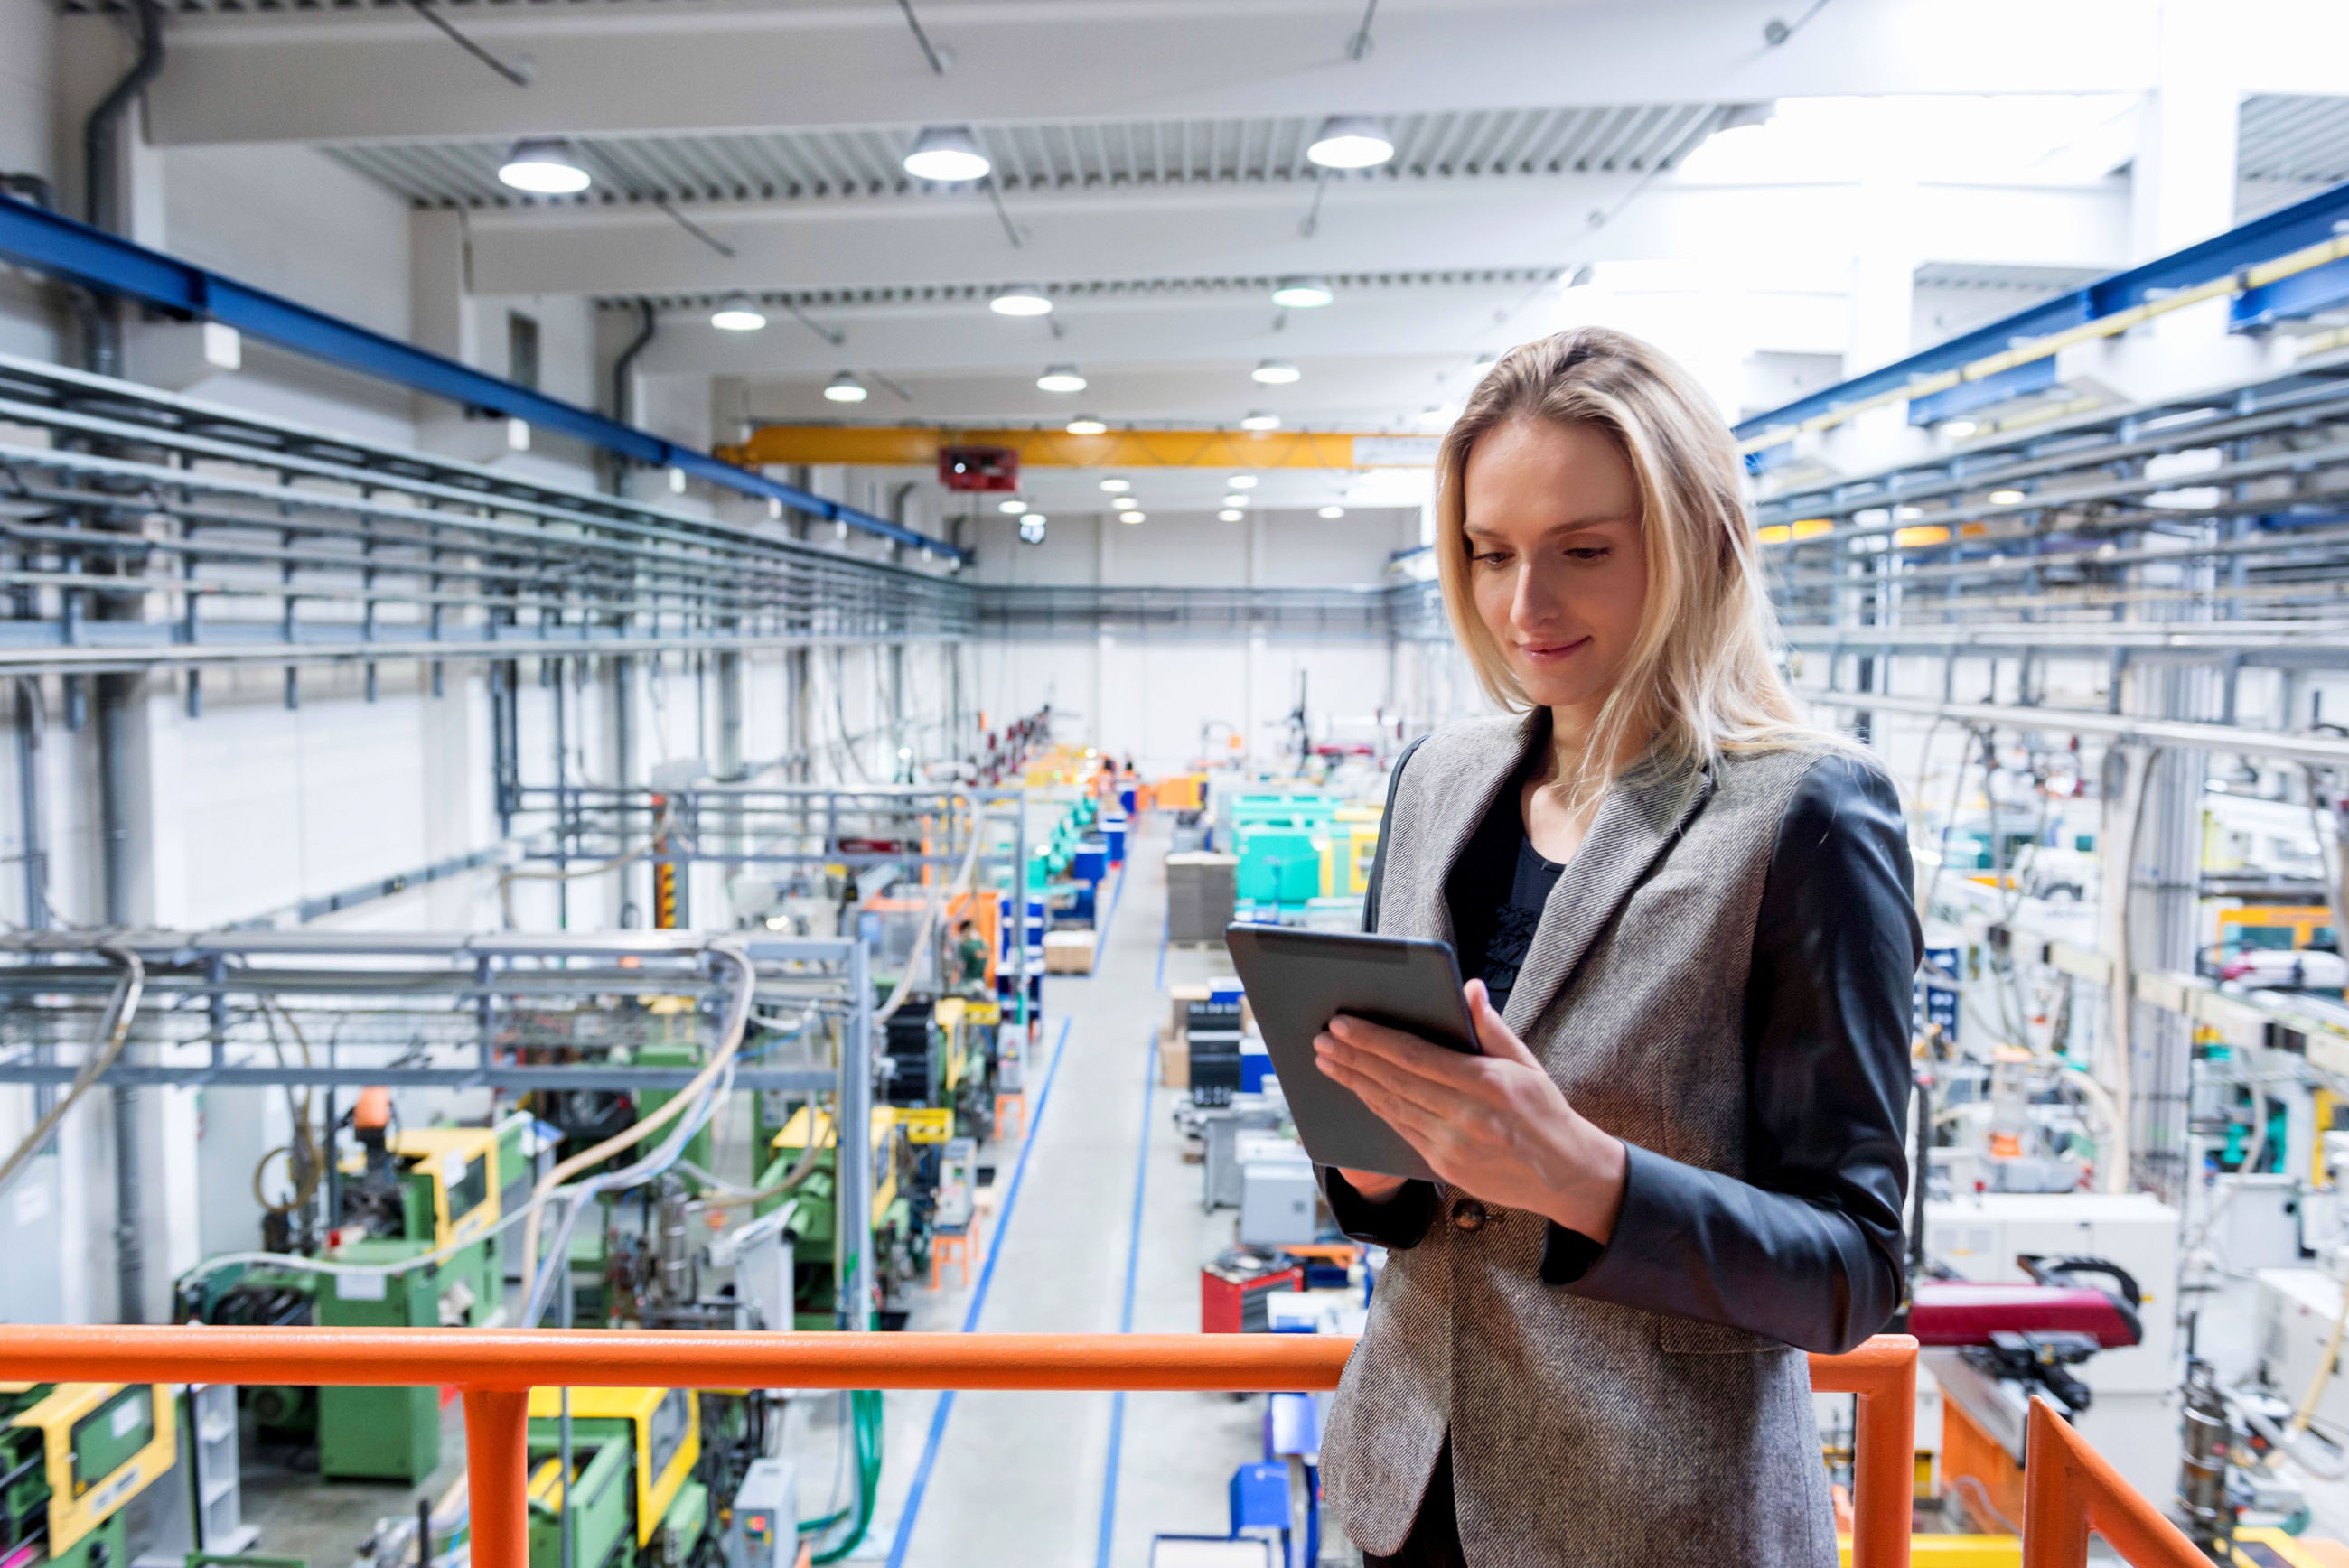 Horizontal color image of blond business female worker standing on balcony on top of large factory, holding digital tablet and examining the production online. Focus on attractive businesswoman, futuristic machines in background.